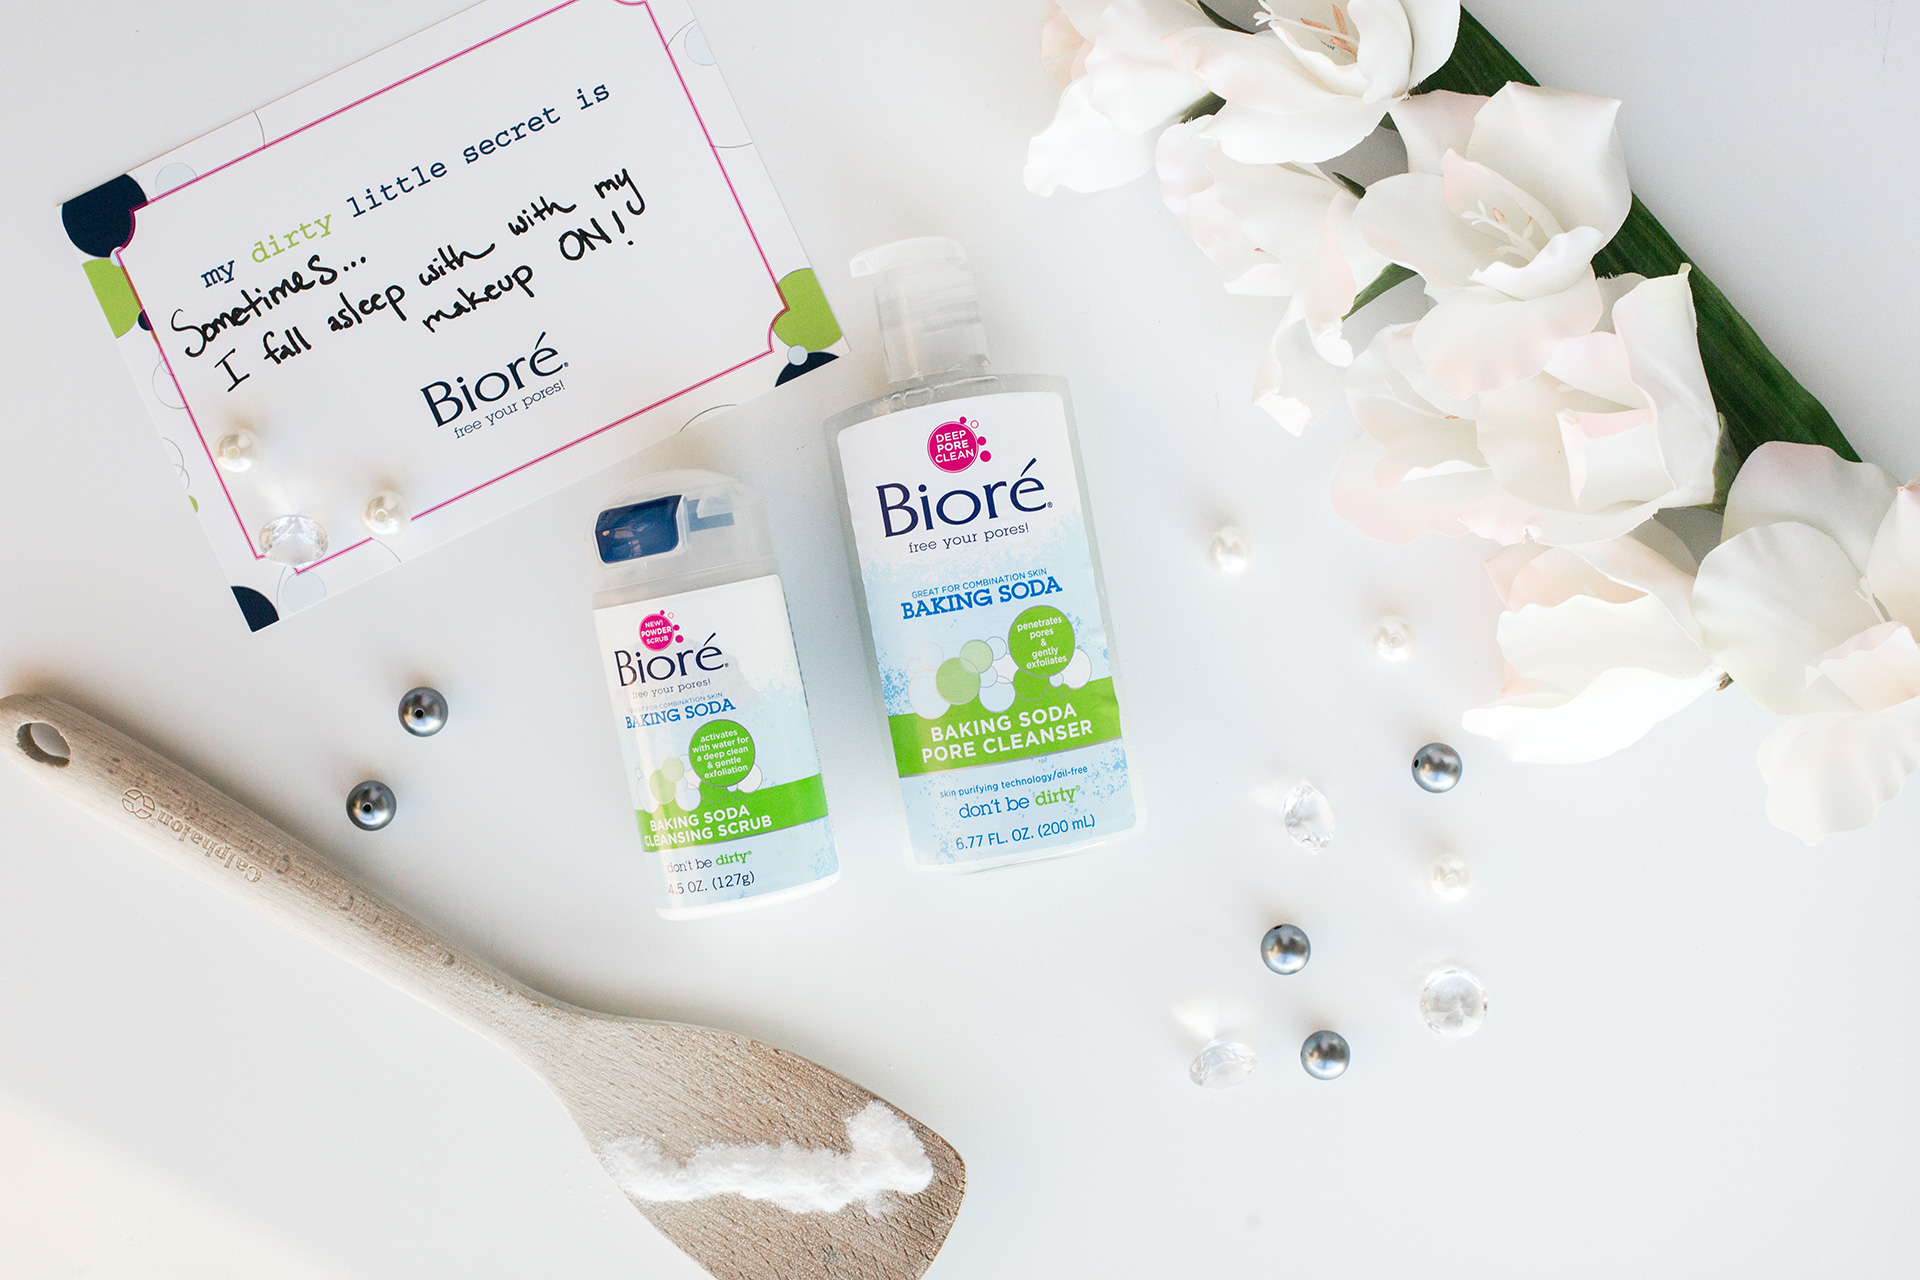 BIORE Baking Soda Cleansing Scrub and Pore Cleanser